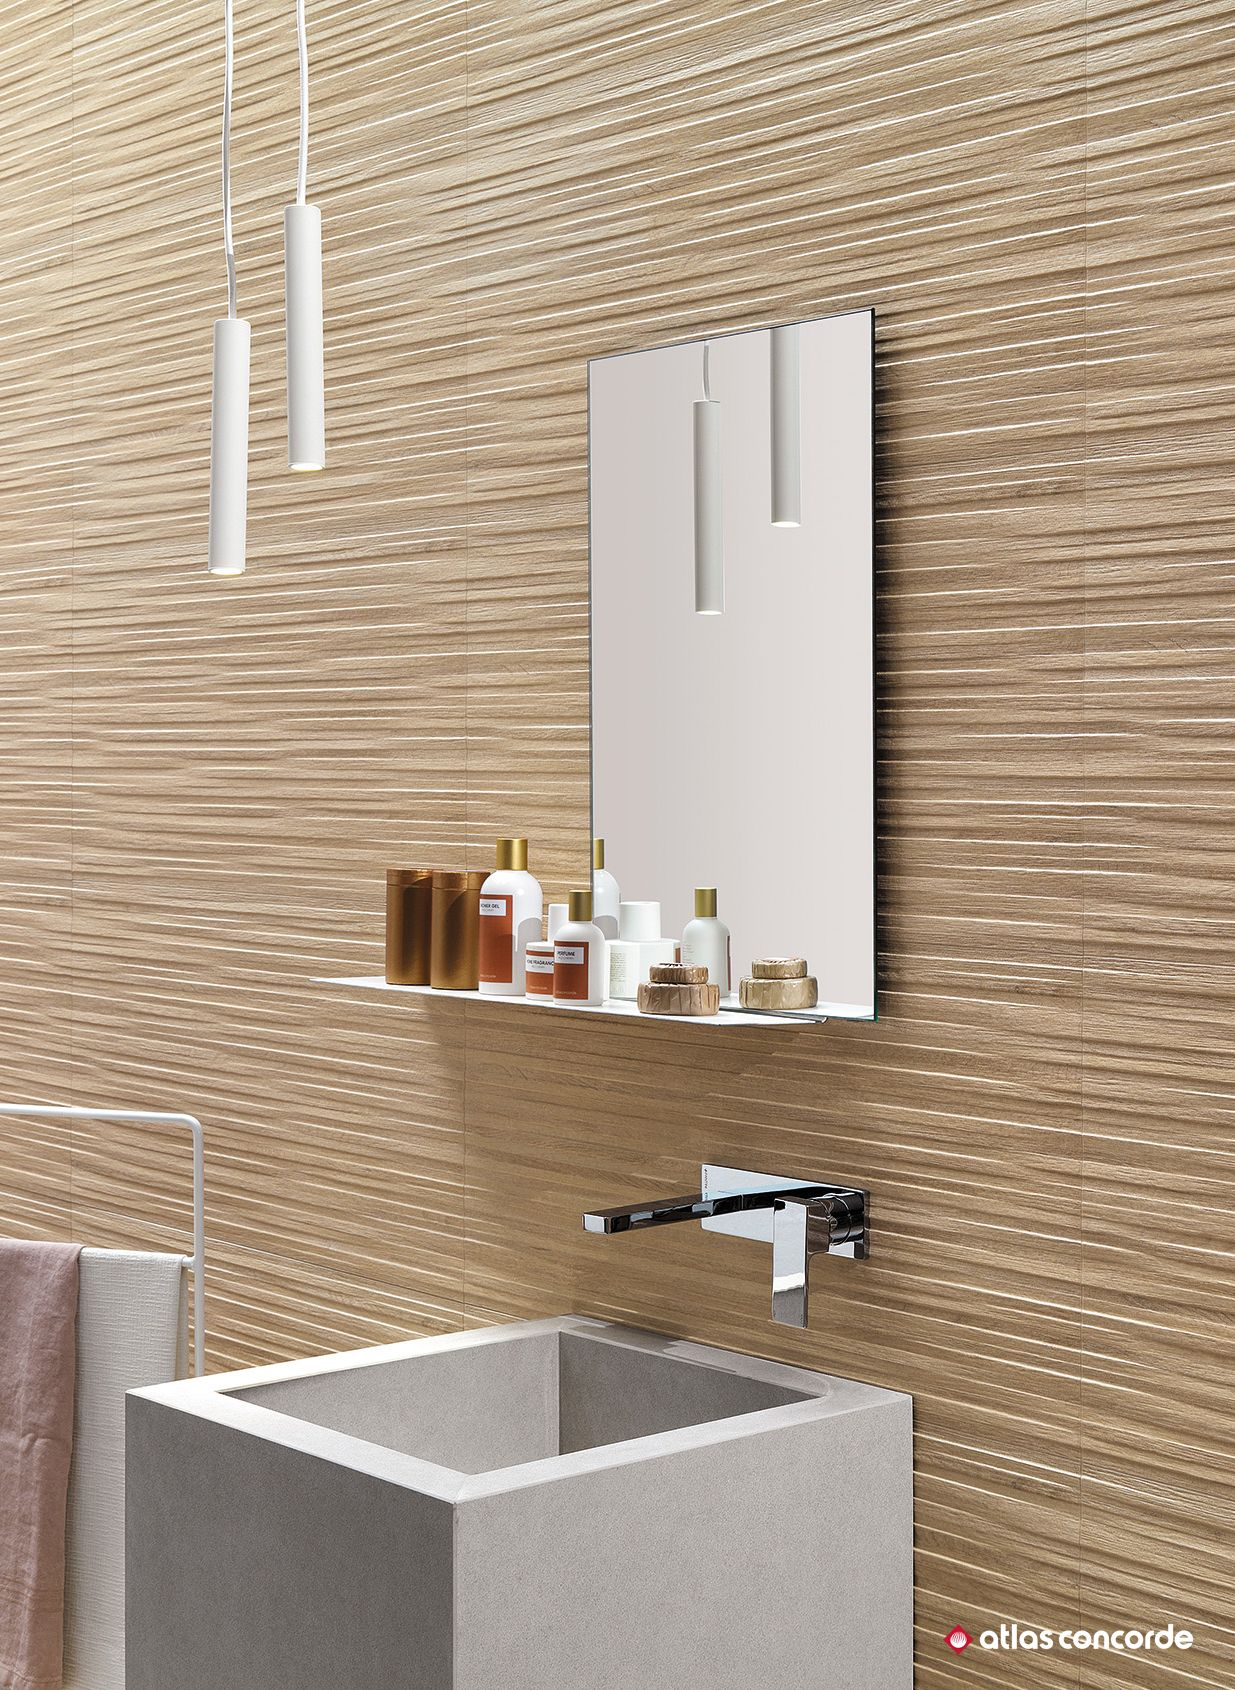 Three Dimensional Wall Tiles Proposed In A Modern And Elegant Style Decorative Wall Tiles Tile Looks Like Wood Wall Tiles